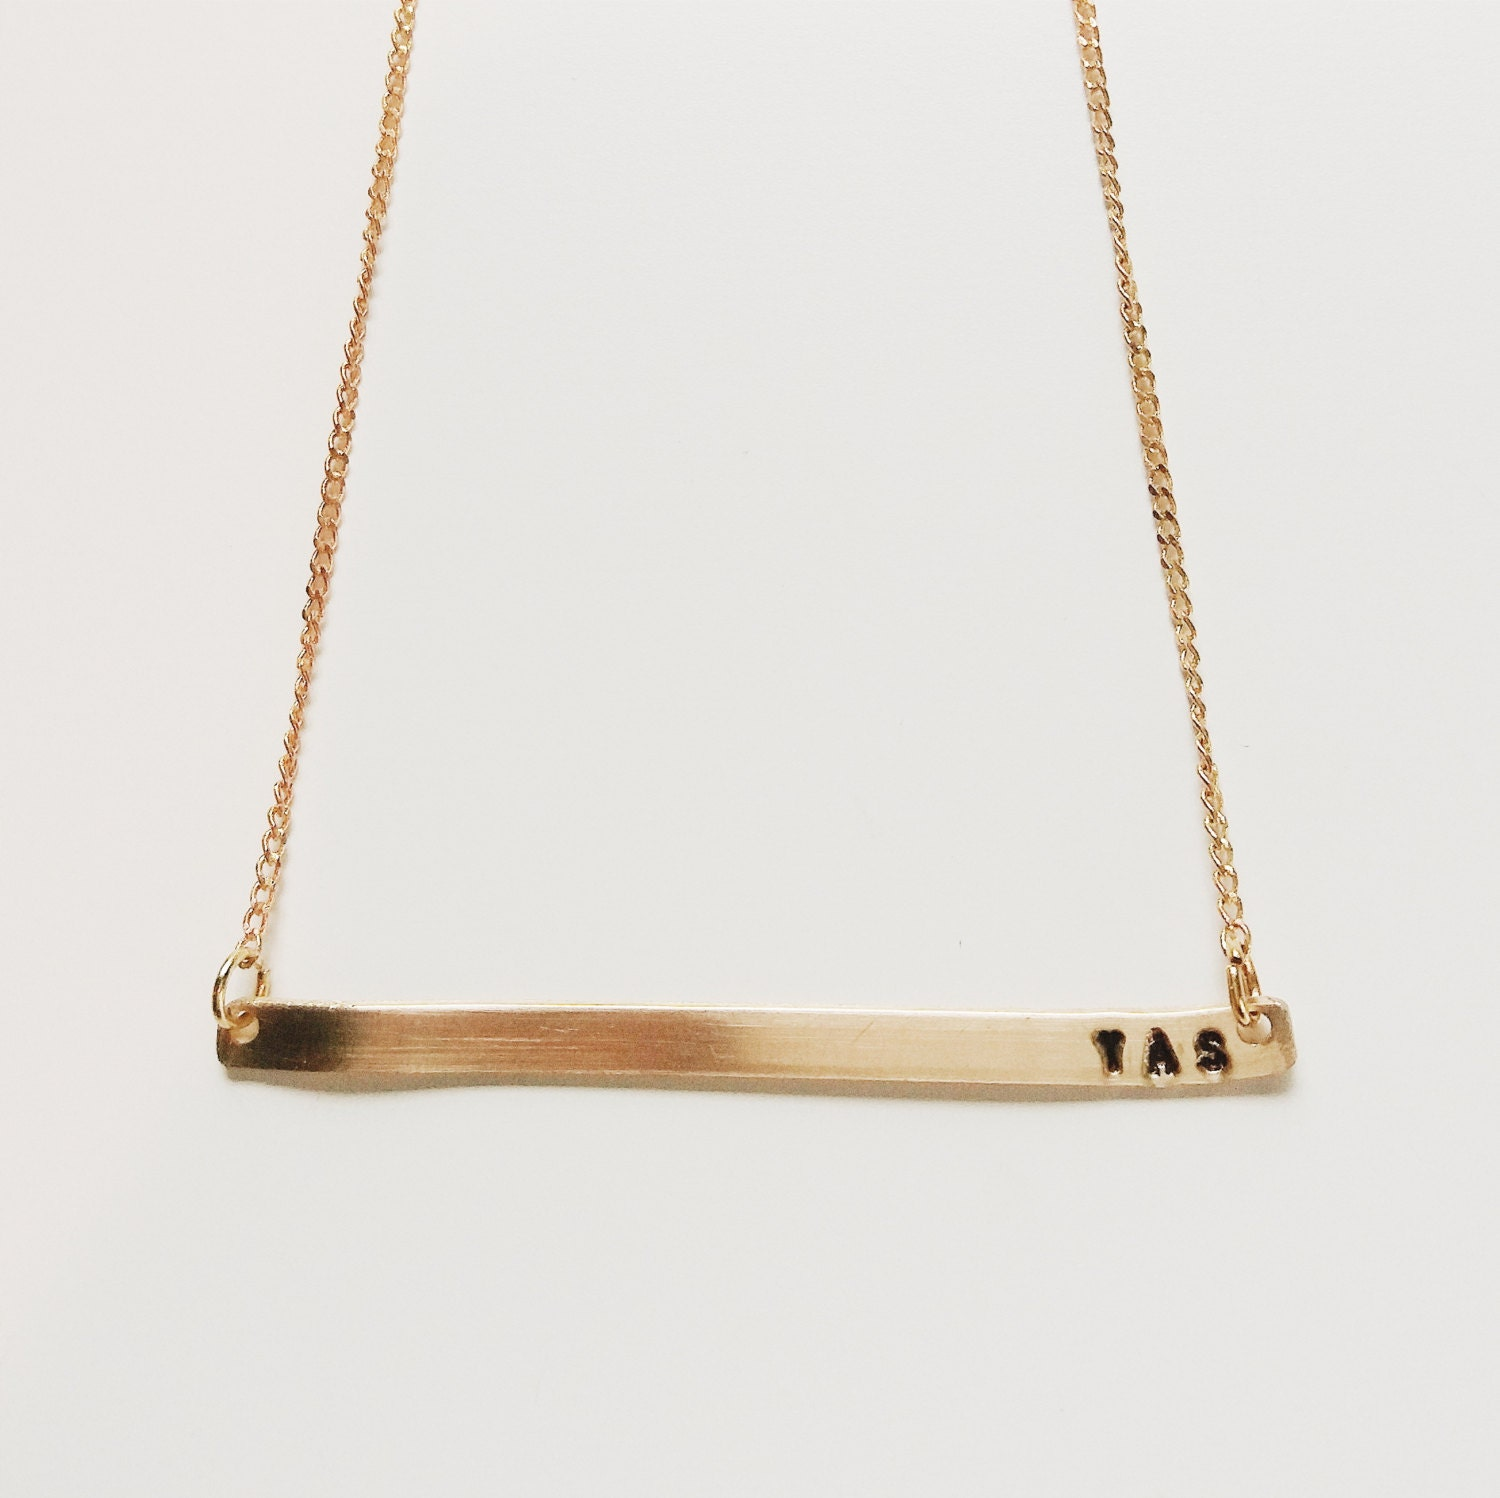 personalized gold bar necklace monogram by